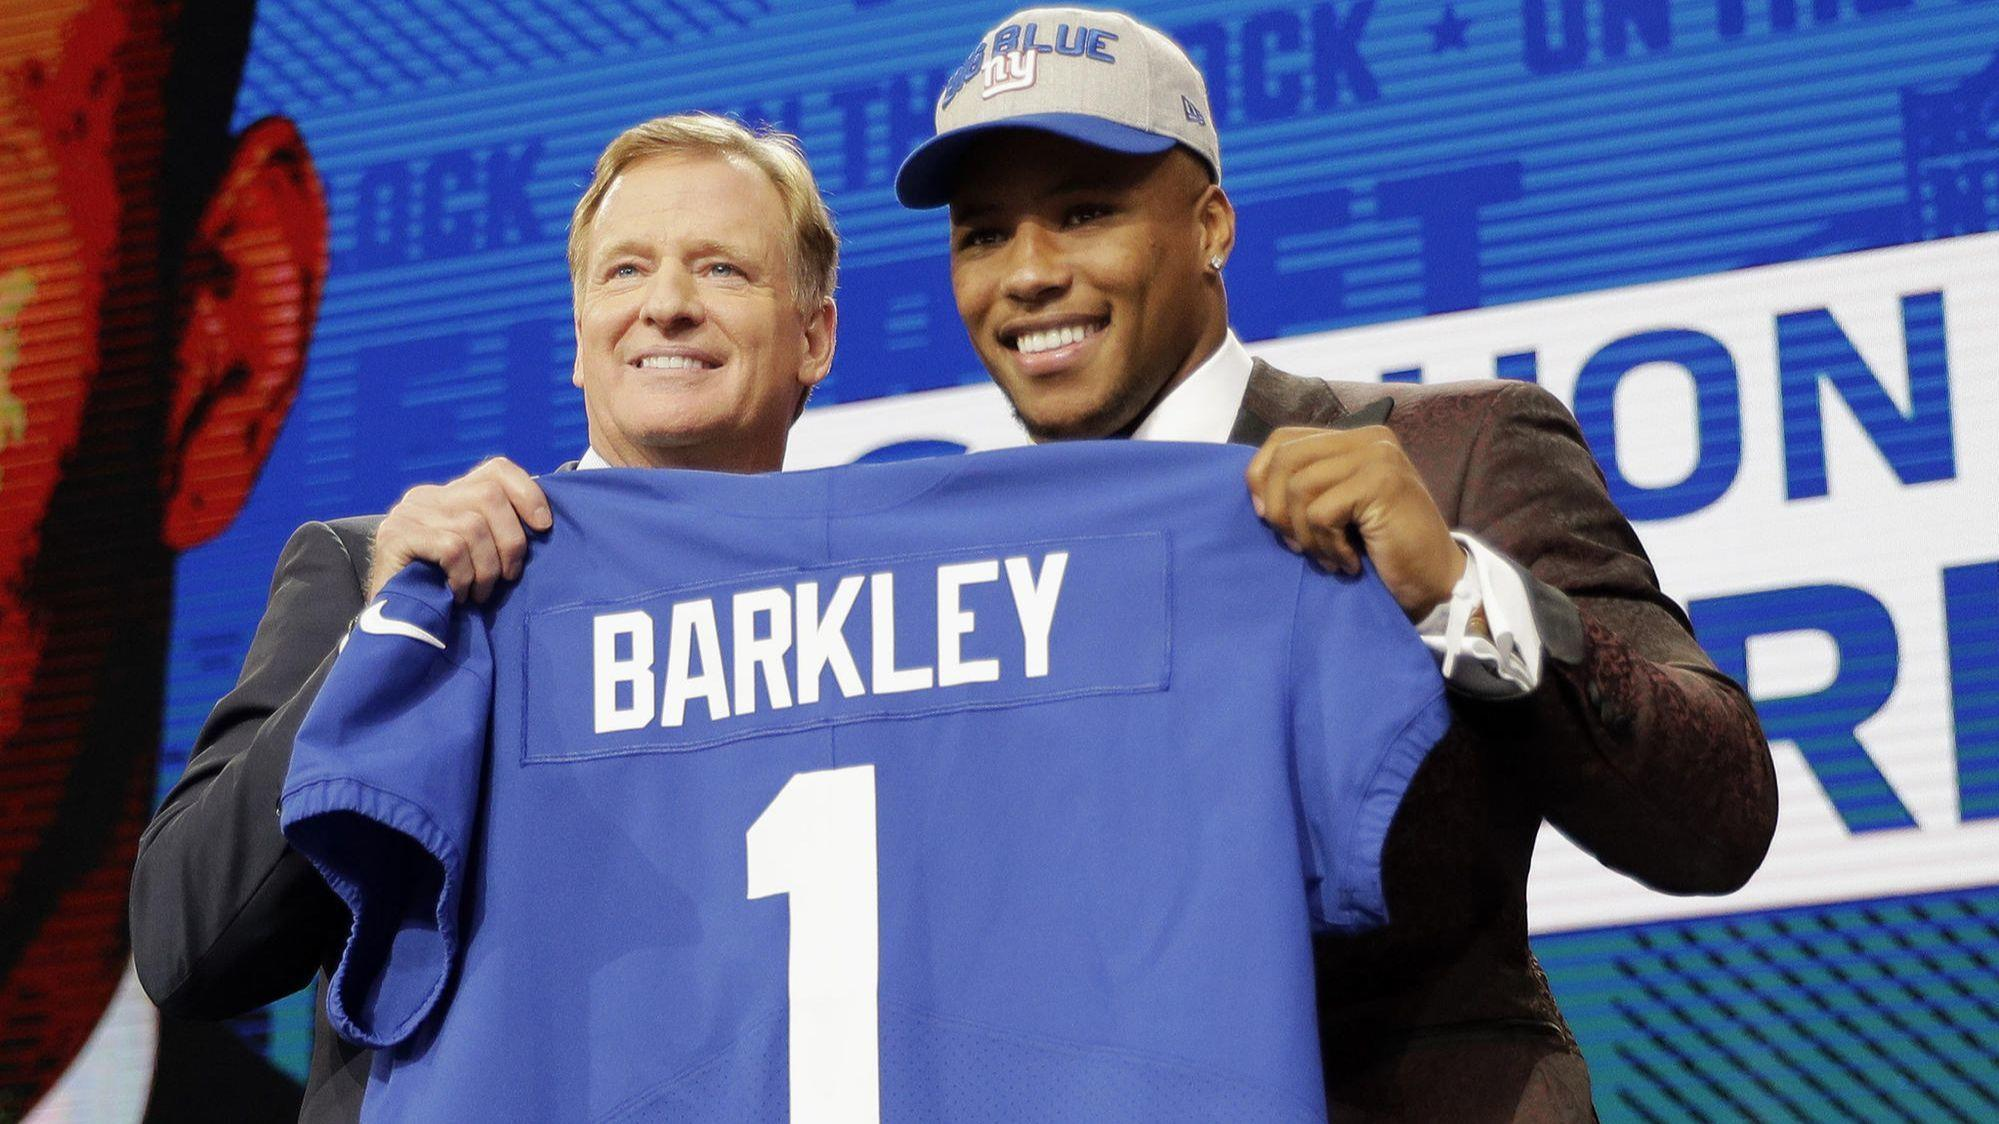 Saquon Barkley drafted by New York Giants   He s going to be great for our  culture  - The Morning Call 8c1fc0e39